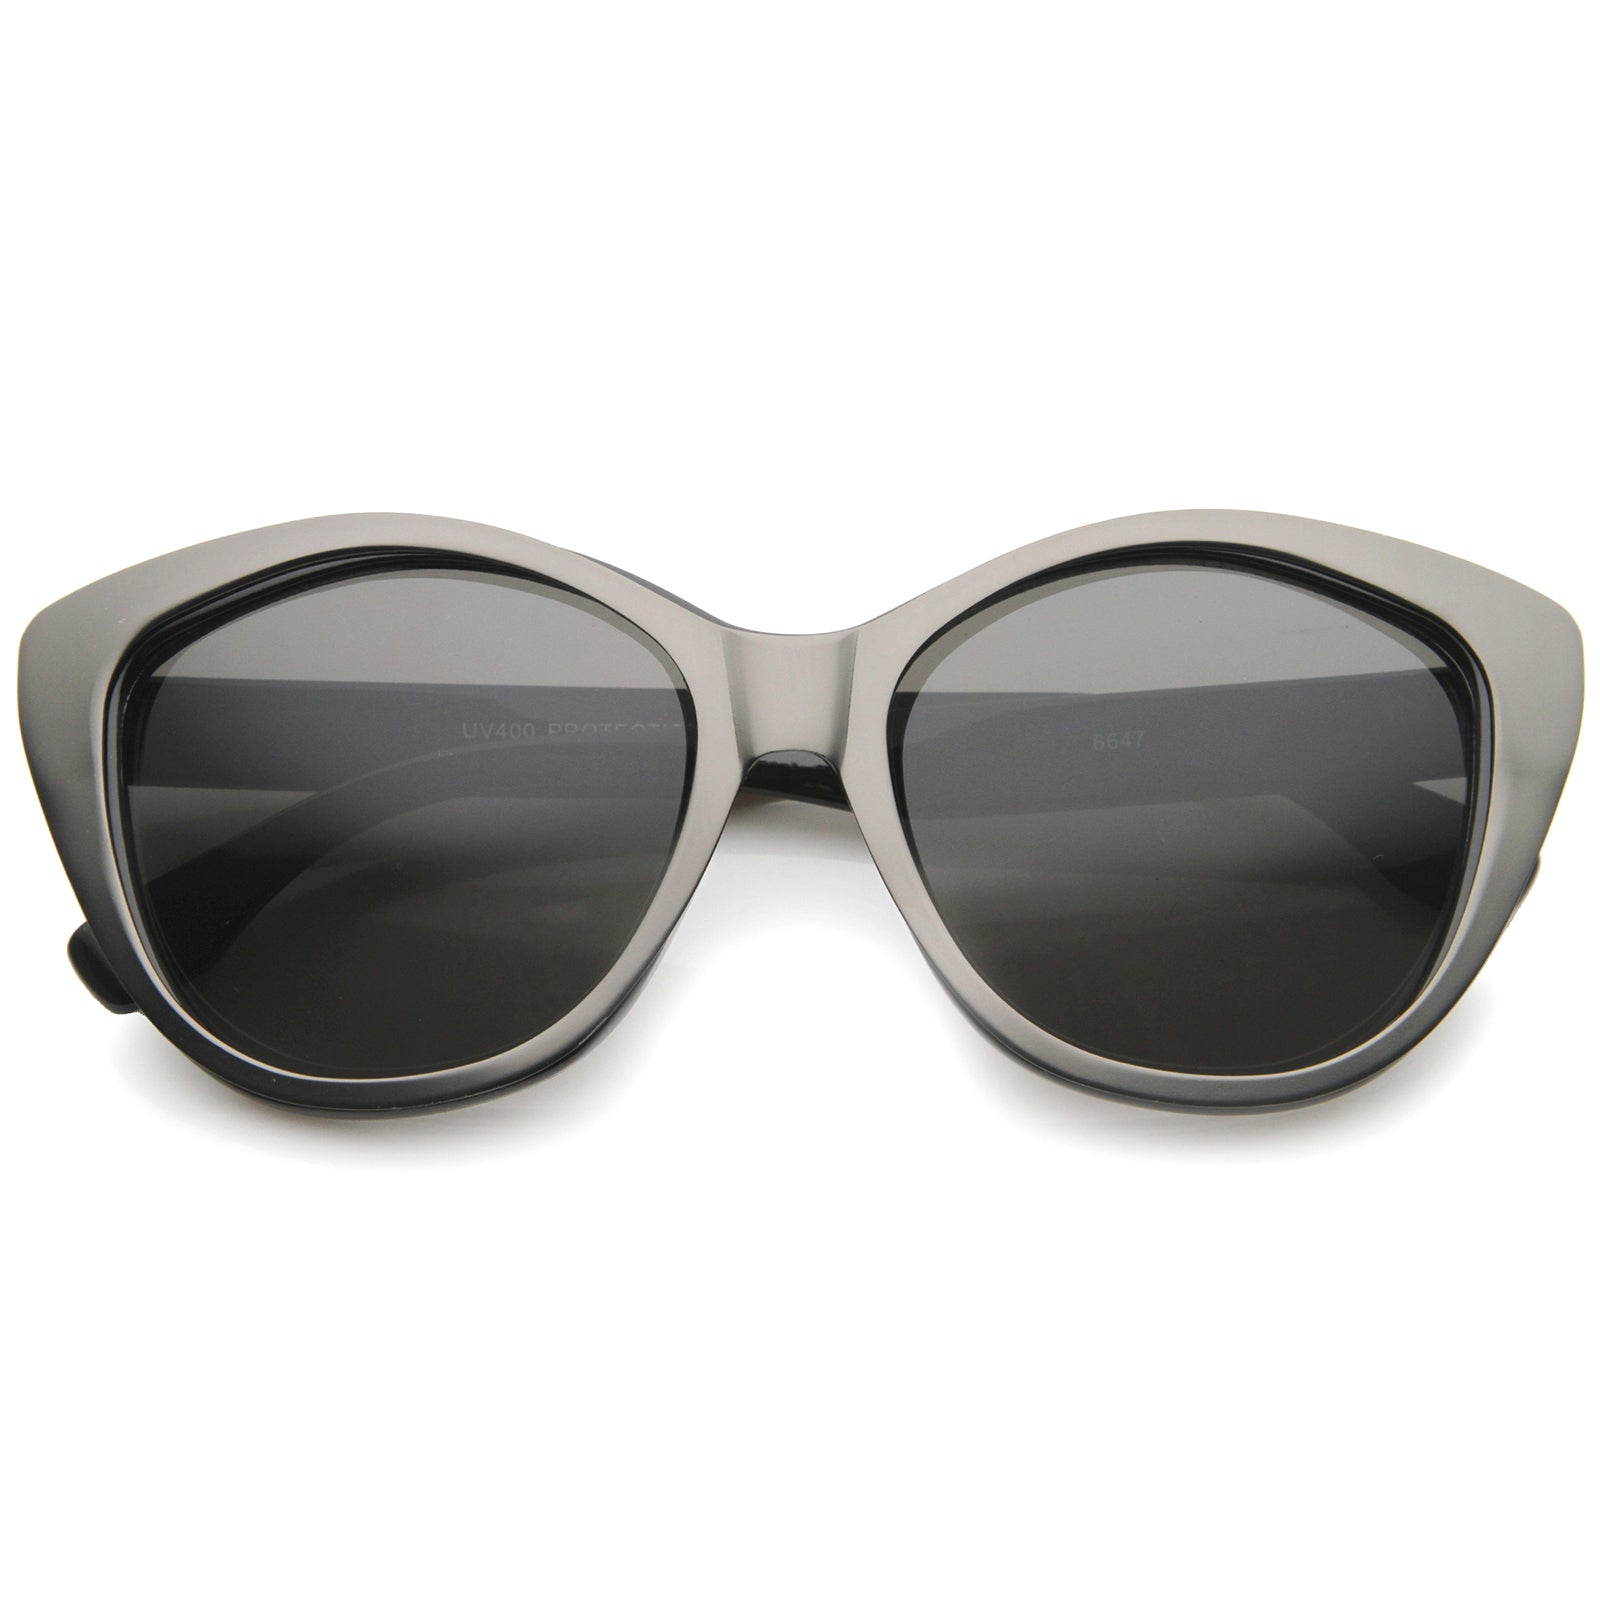 Women's High Fashion Two-Toned Tinted Lens Oversize Cat Eye Sunglasses 55mm - sunglass.la - 9